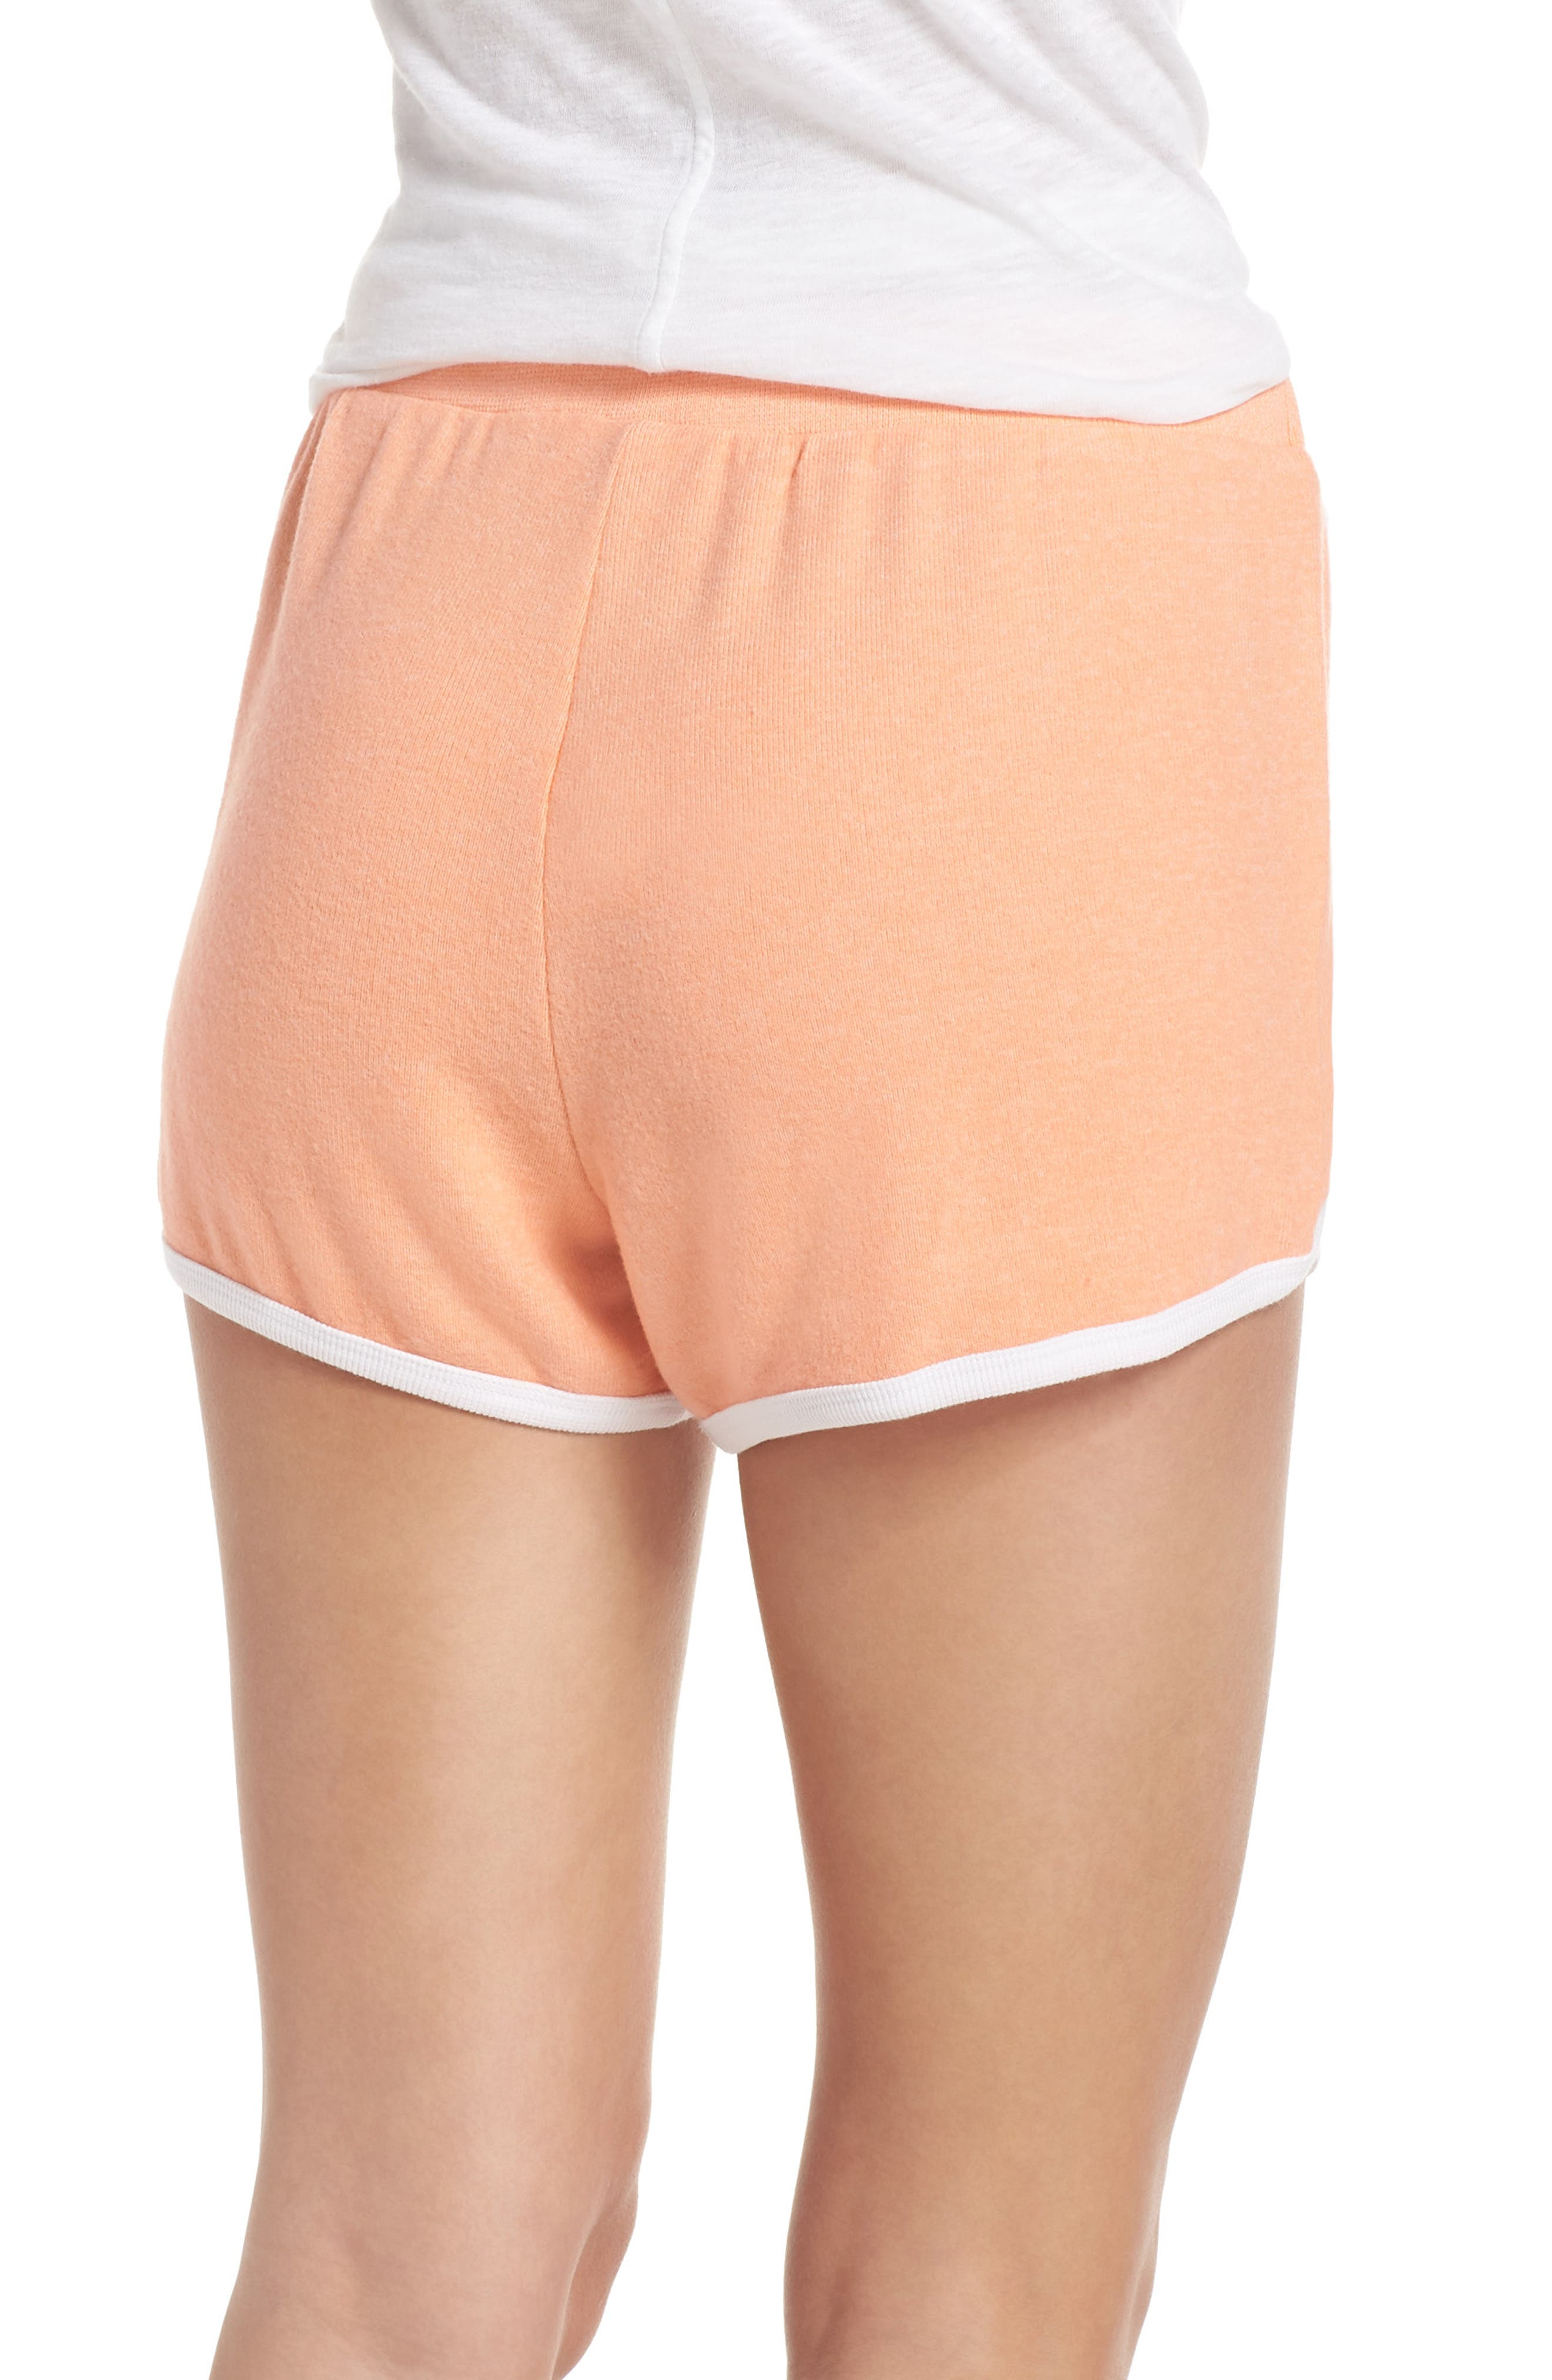 Too Cool Shorts,                             Alternate thumbnail 2, color,                             CORAL PINK